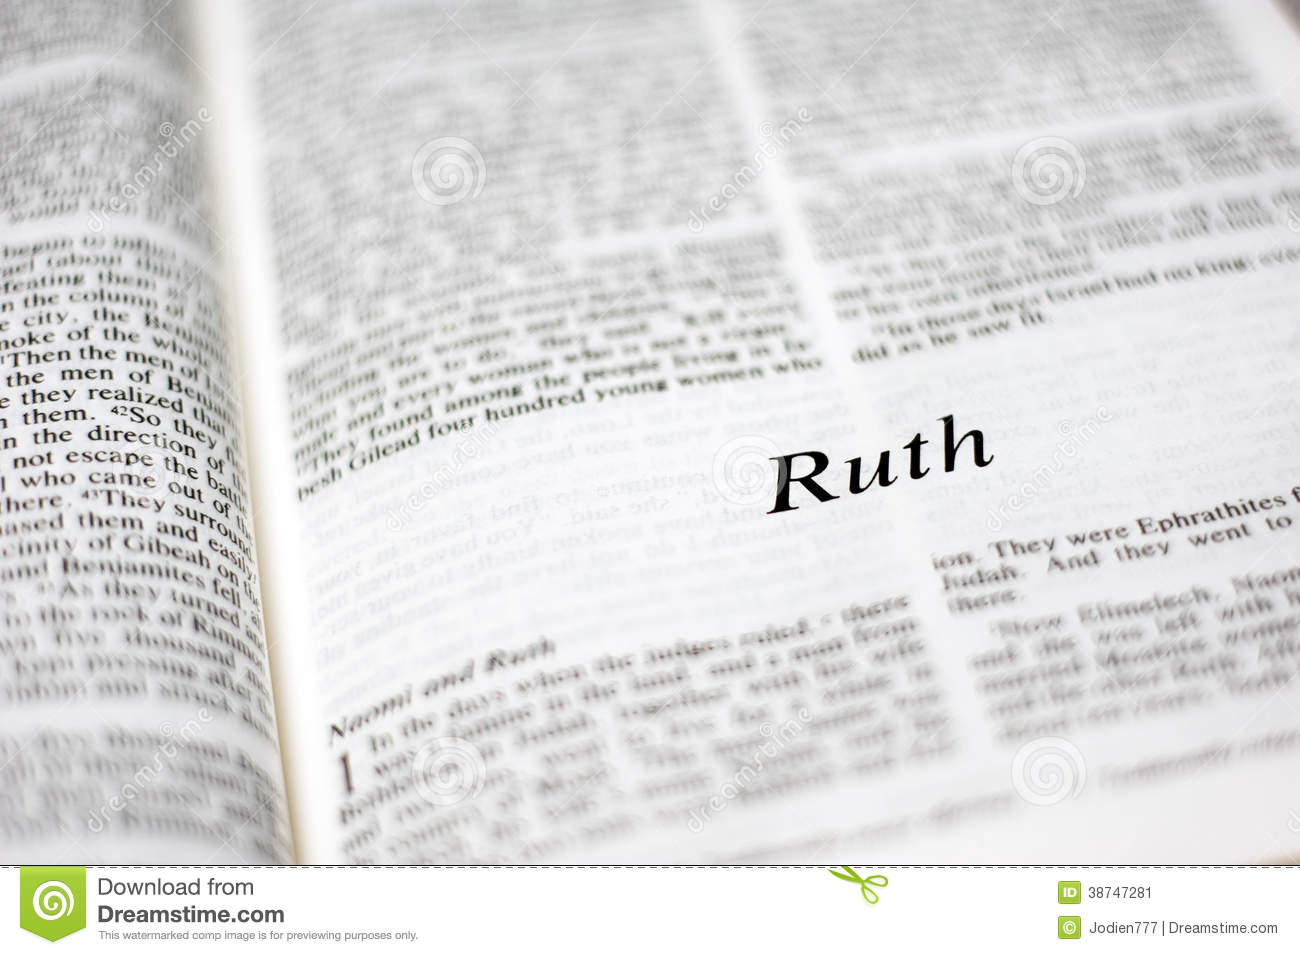 ruth jewish girl personals Dr ruth offering advice on the jewish dating jdate, one of the best jewish dating where she will answer dating and relationship questions dr ruth is.